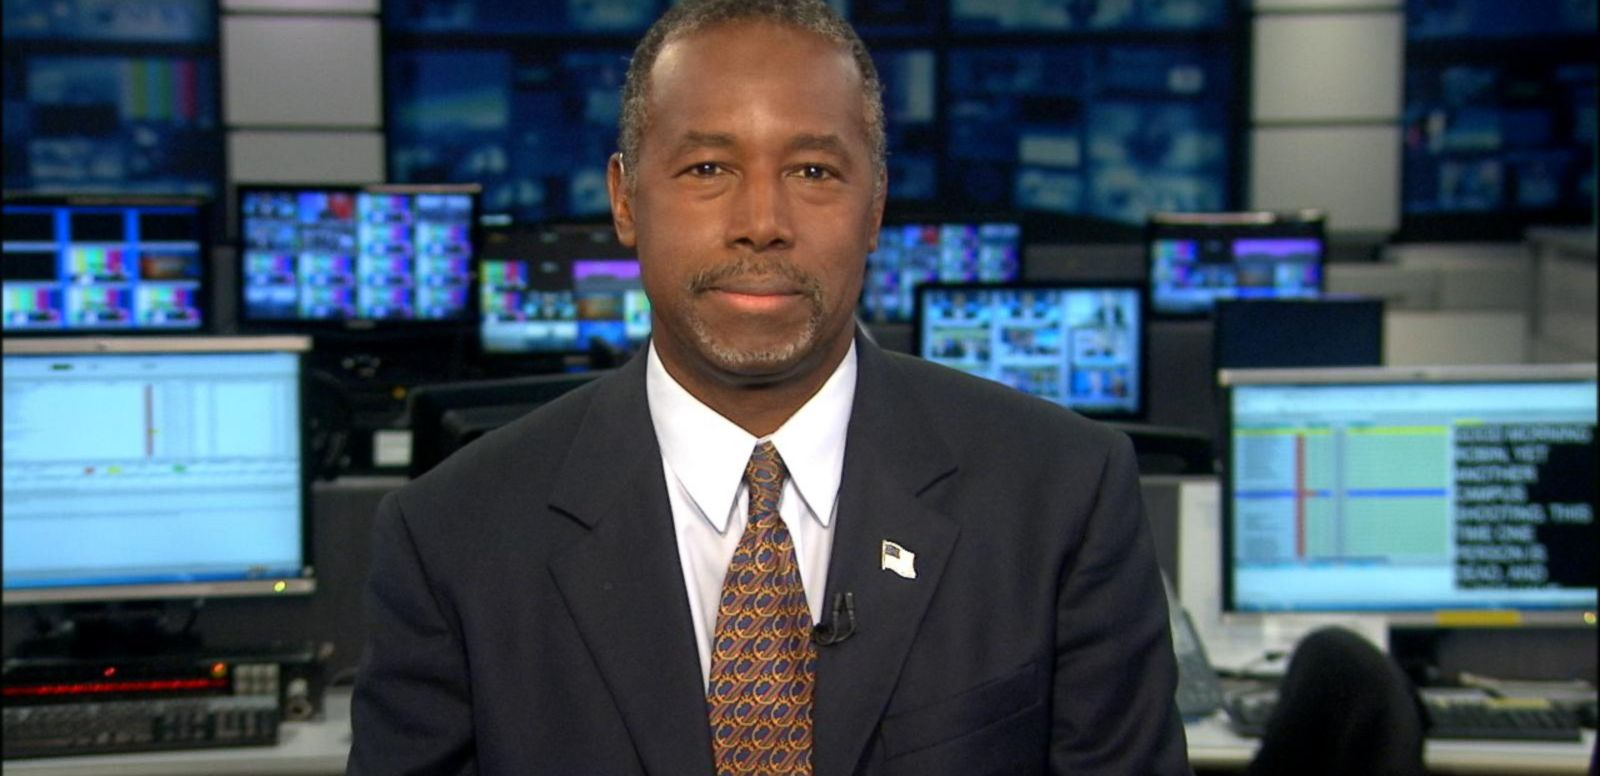 VIDEO: Dr. Ben Carson Discusses His Comments On Gun Control and the Holocaust